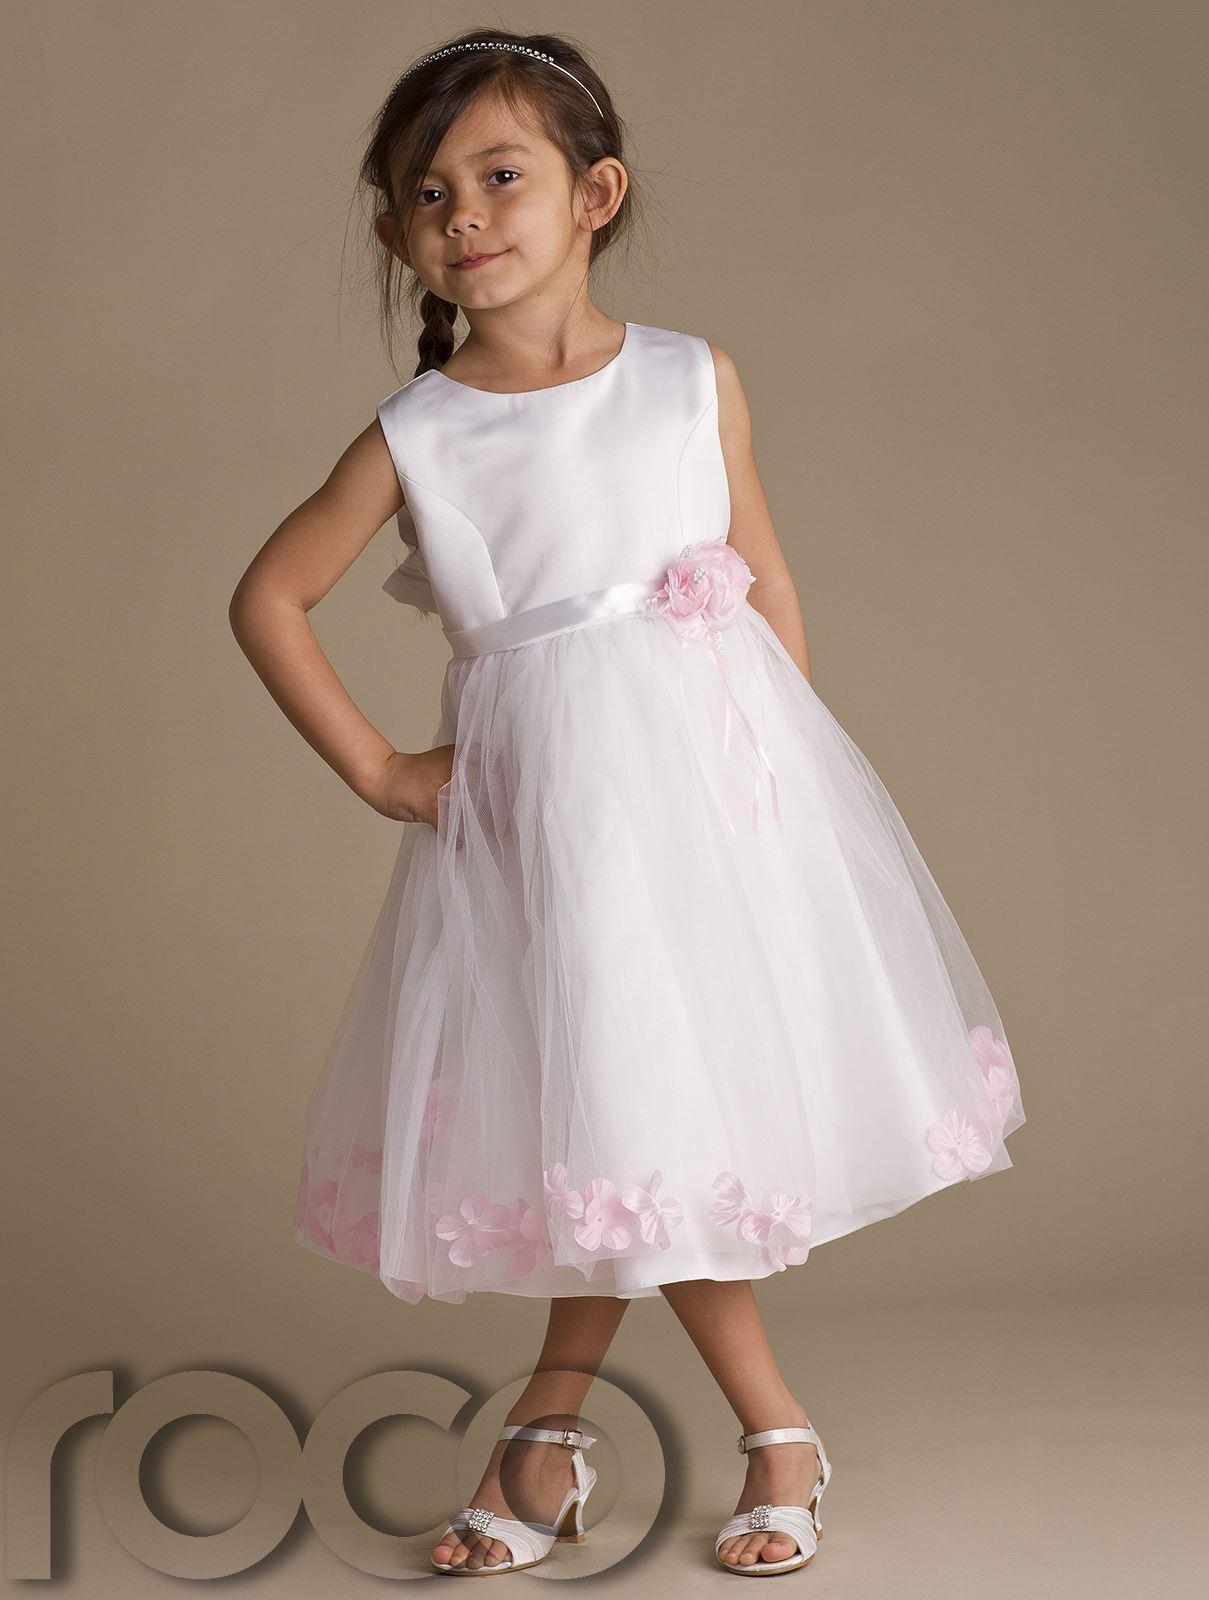 White And Pink Flower Girl Dresses Uk Expensive Wedding Dresses Online